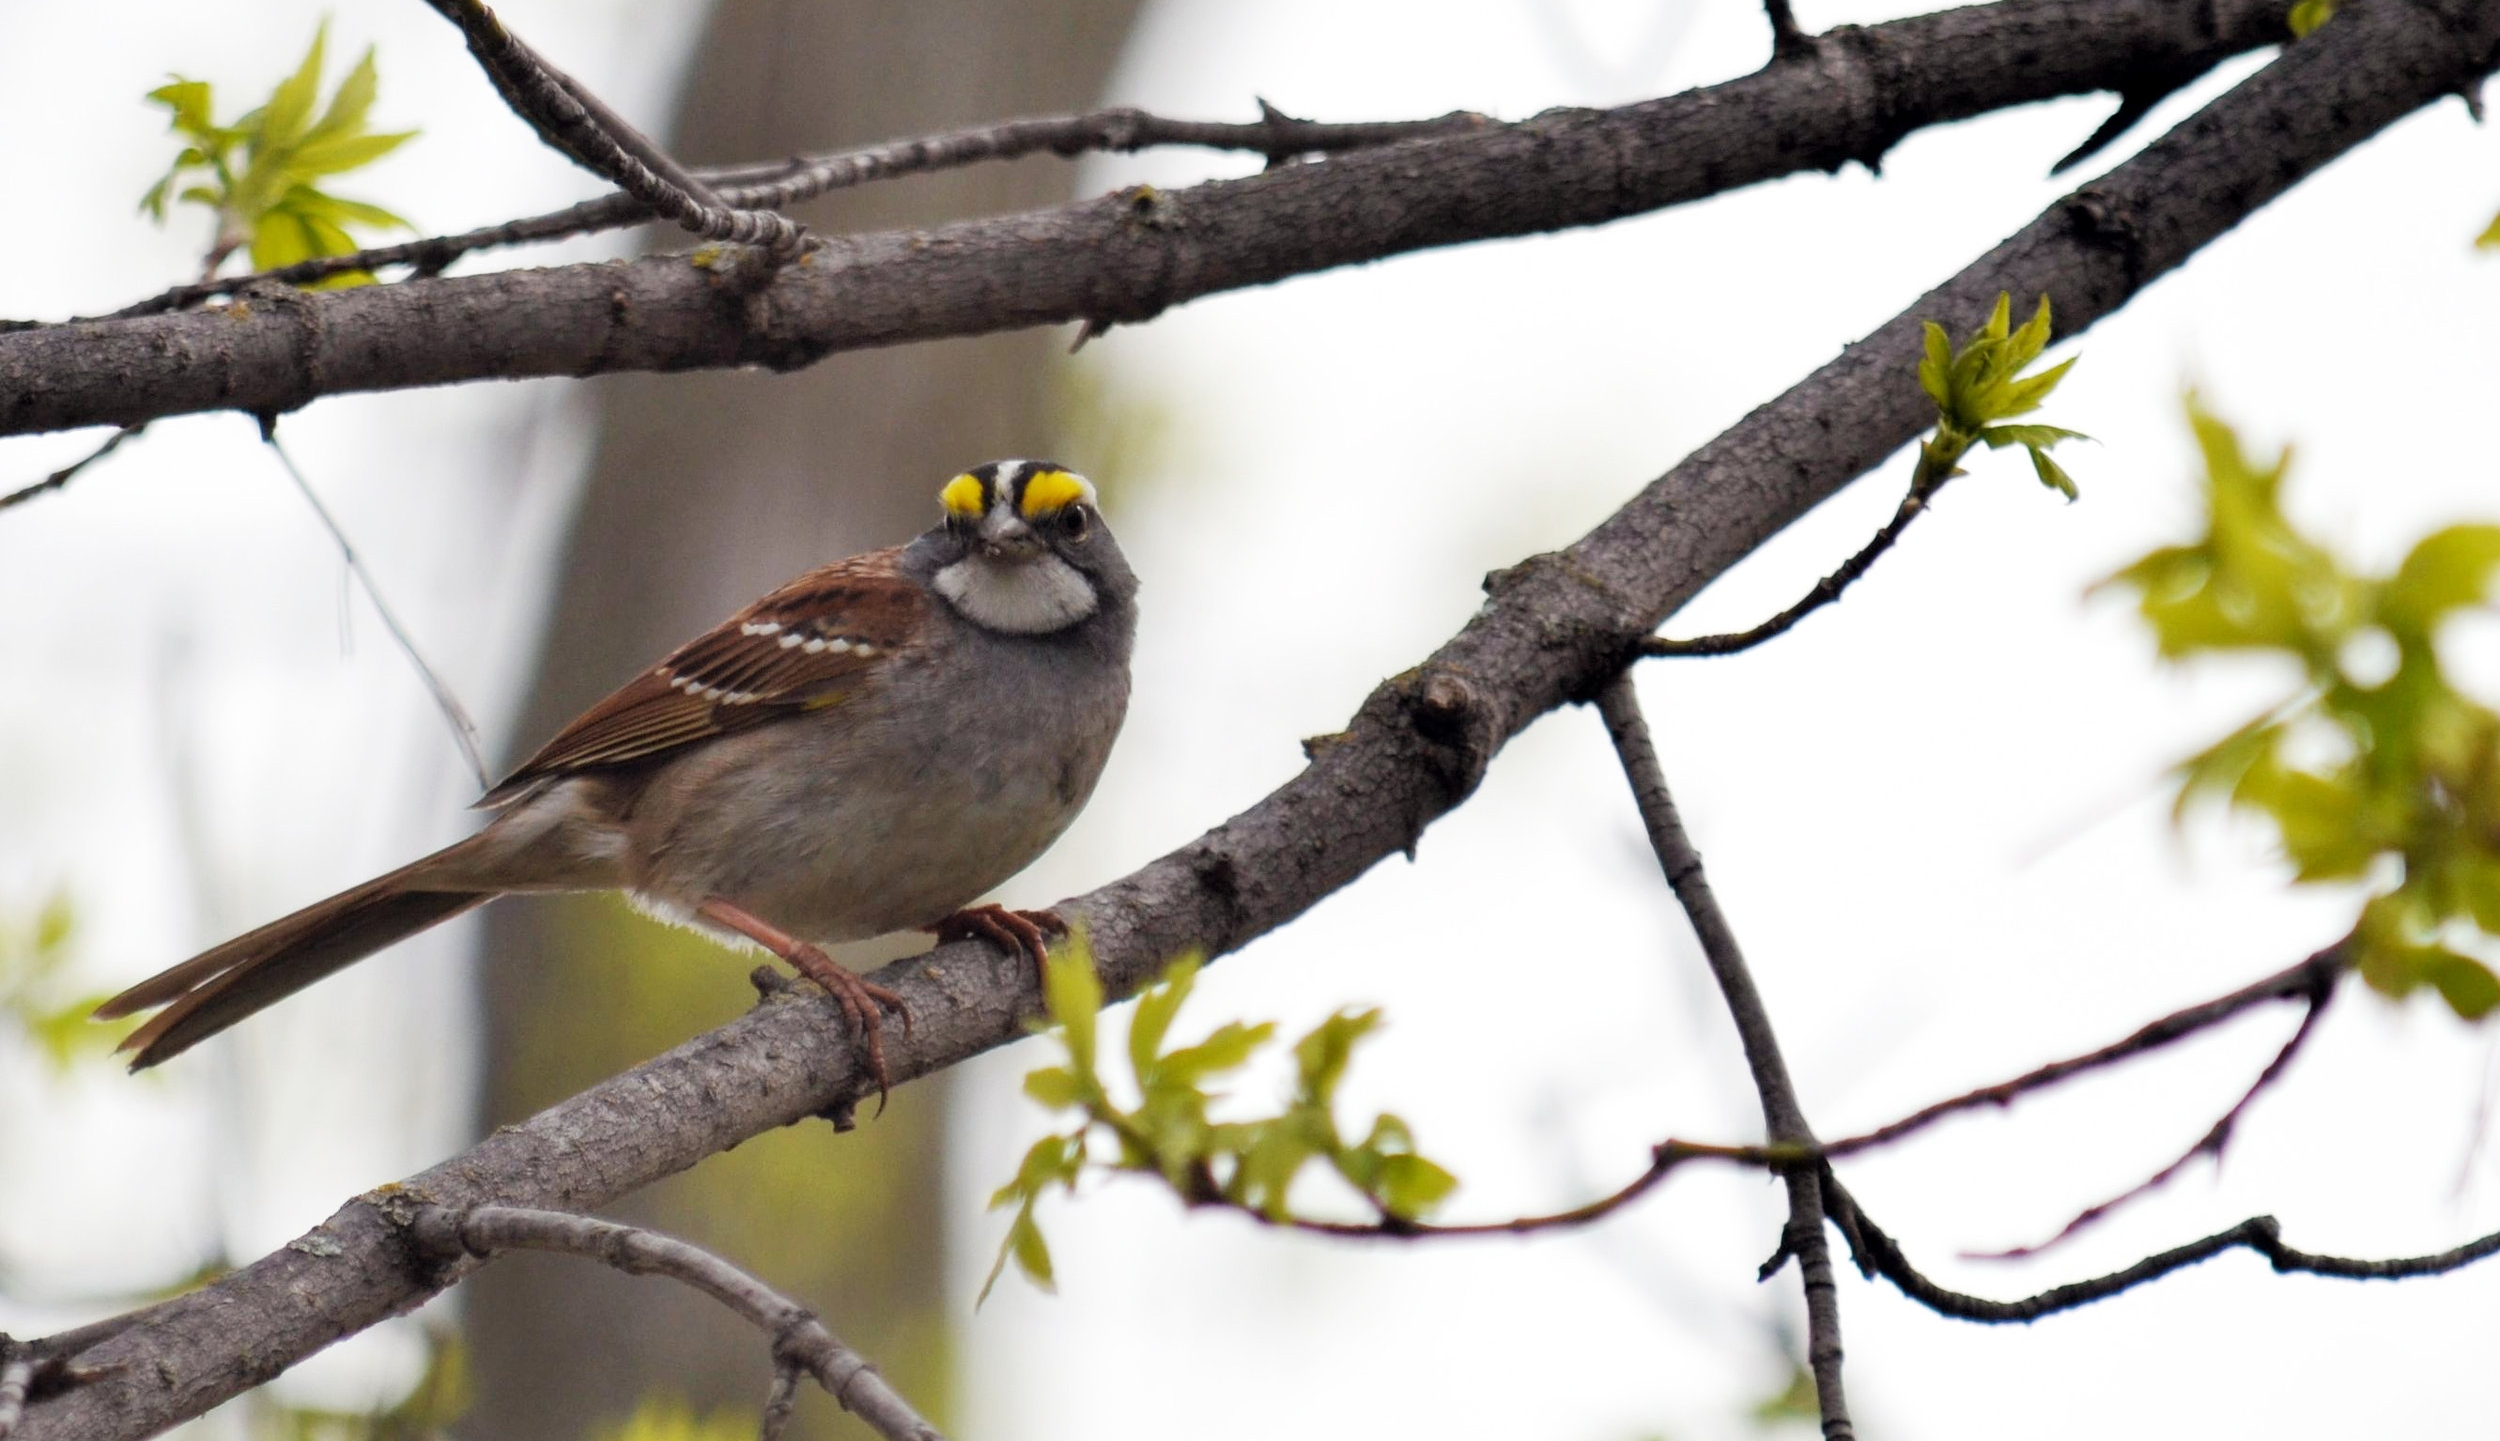 White-striped white-throated sparrow, photo by USFWS Midwest